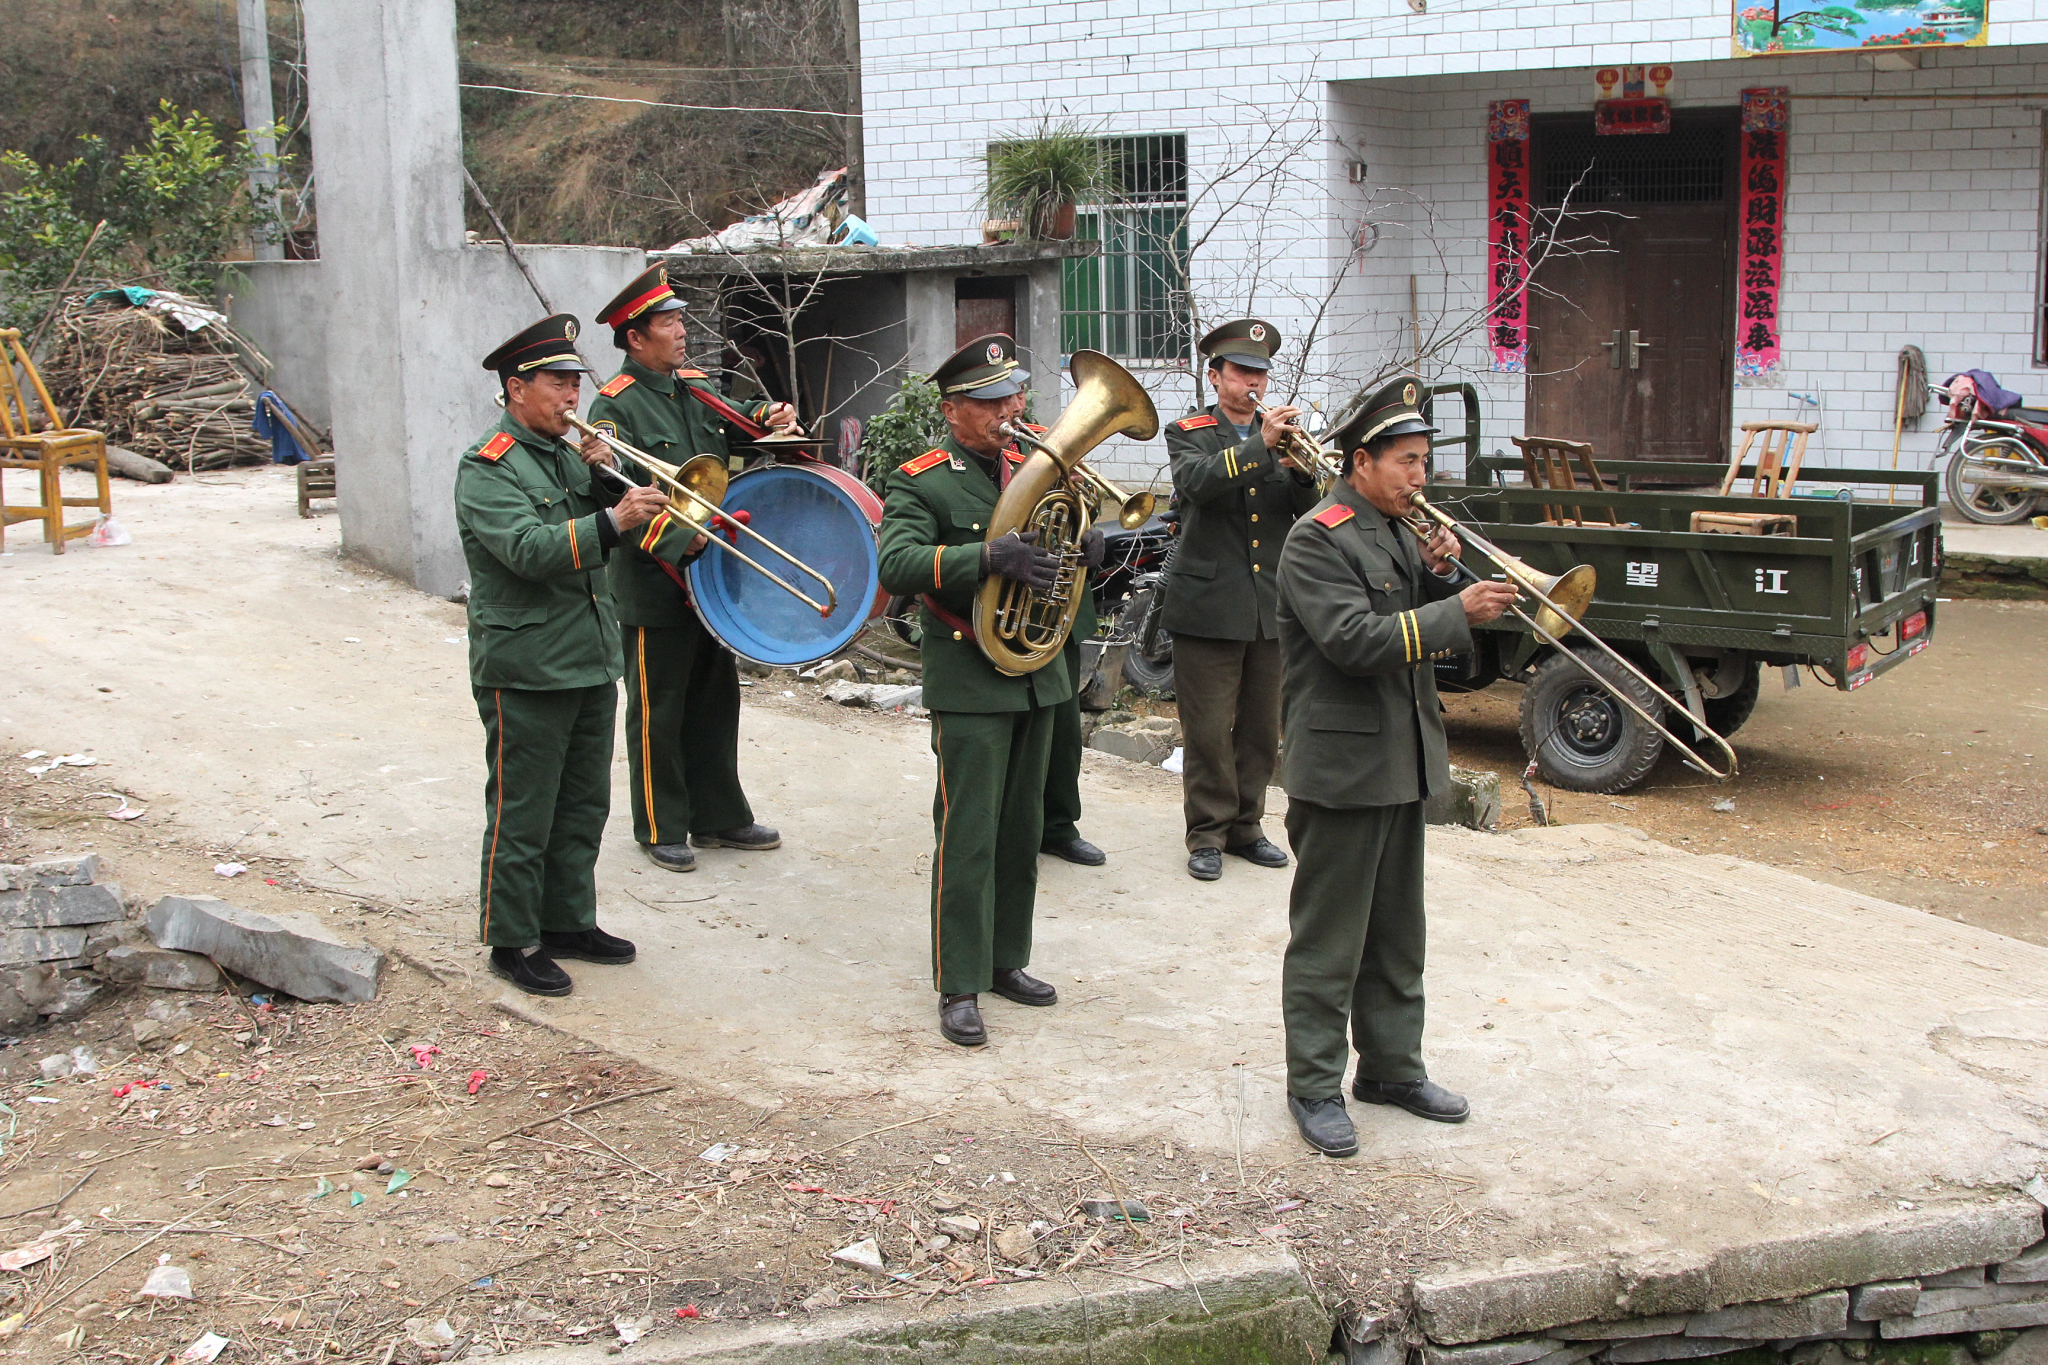 Frank: A band made up of farmers wearing People's Liberation Army uniforms greeted Rocky and Xiao Piao after they arrived in the village for their wedding in a black BMW. I drove guests in my rented Buick van.